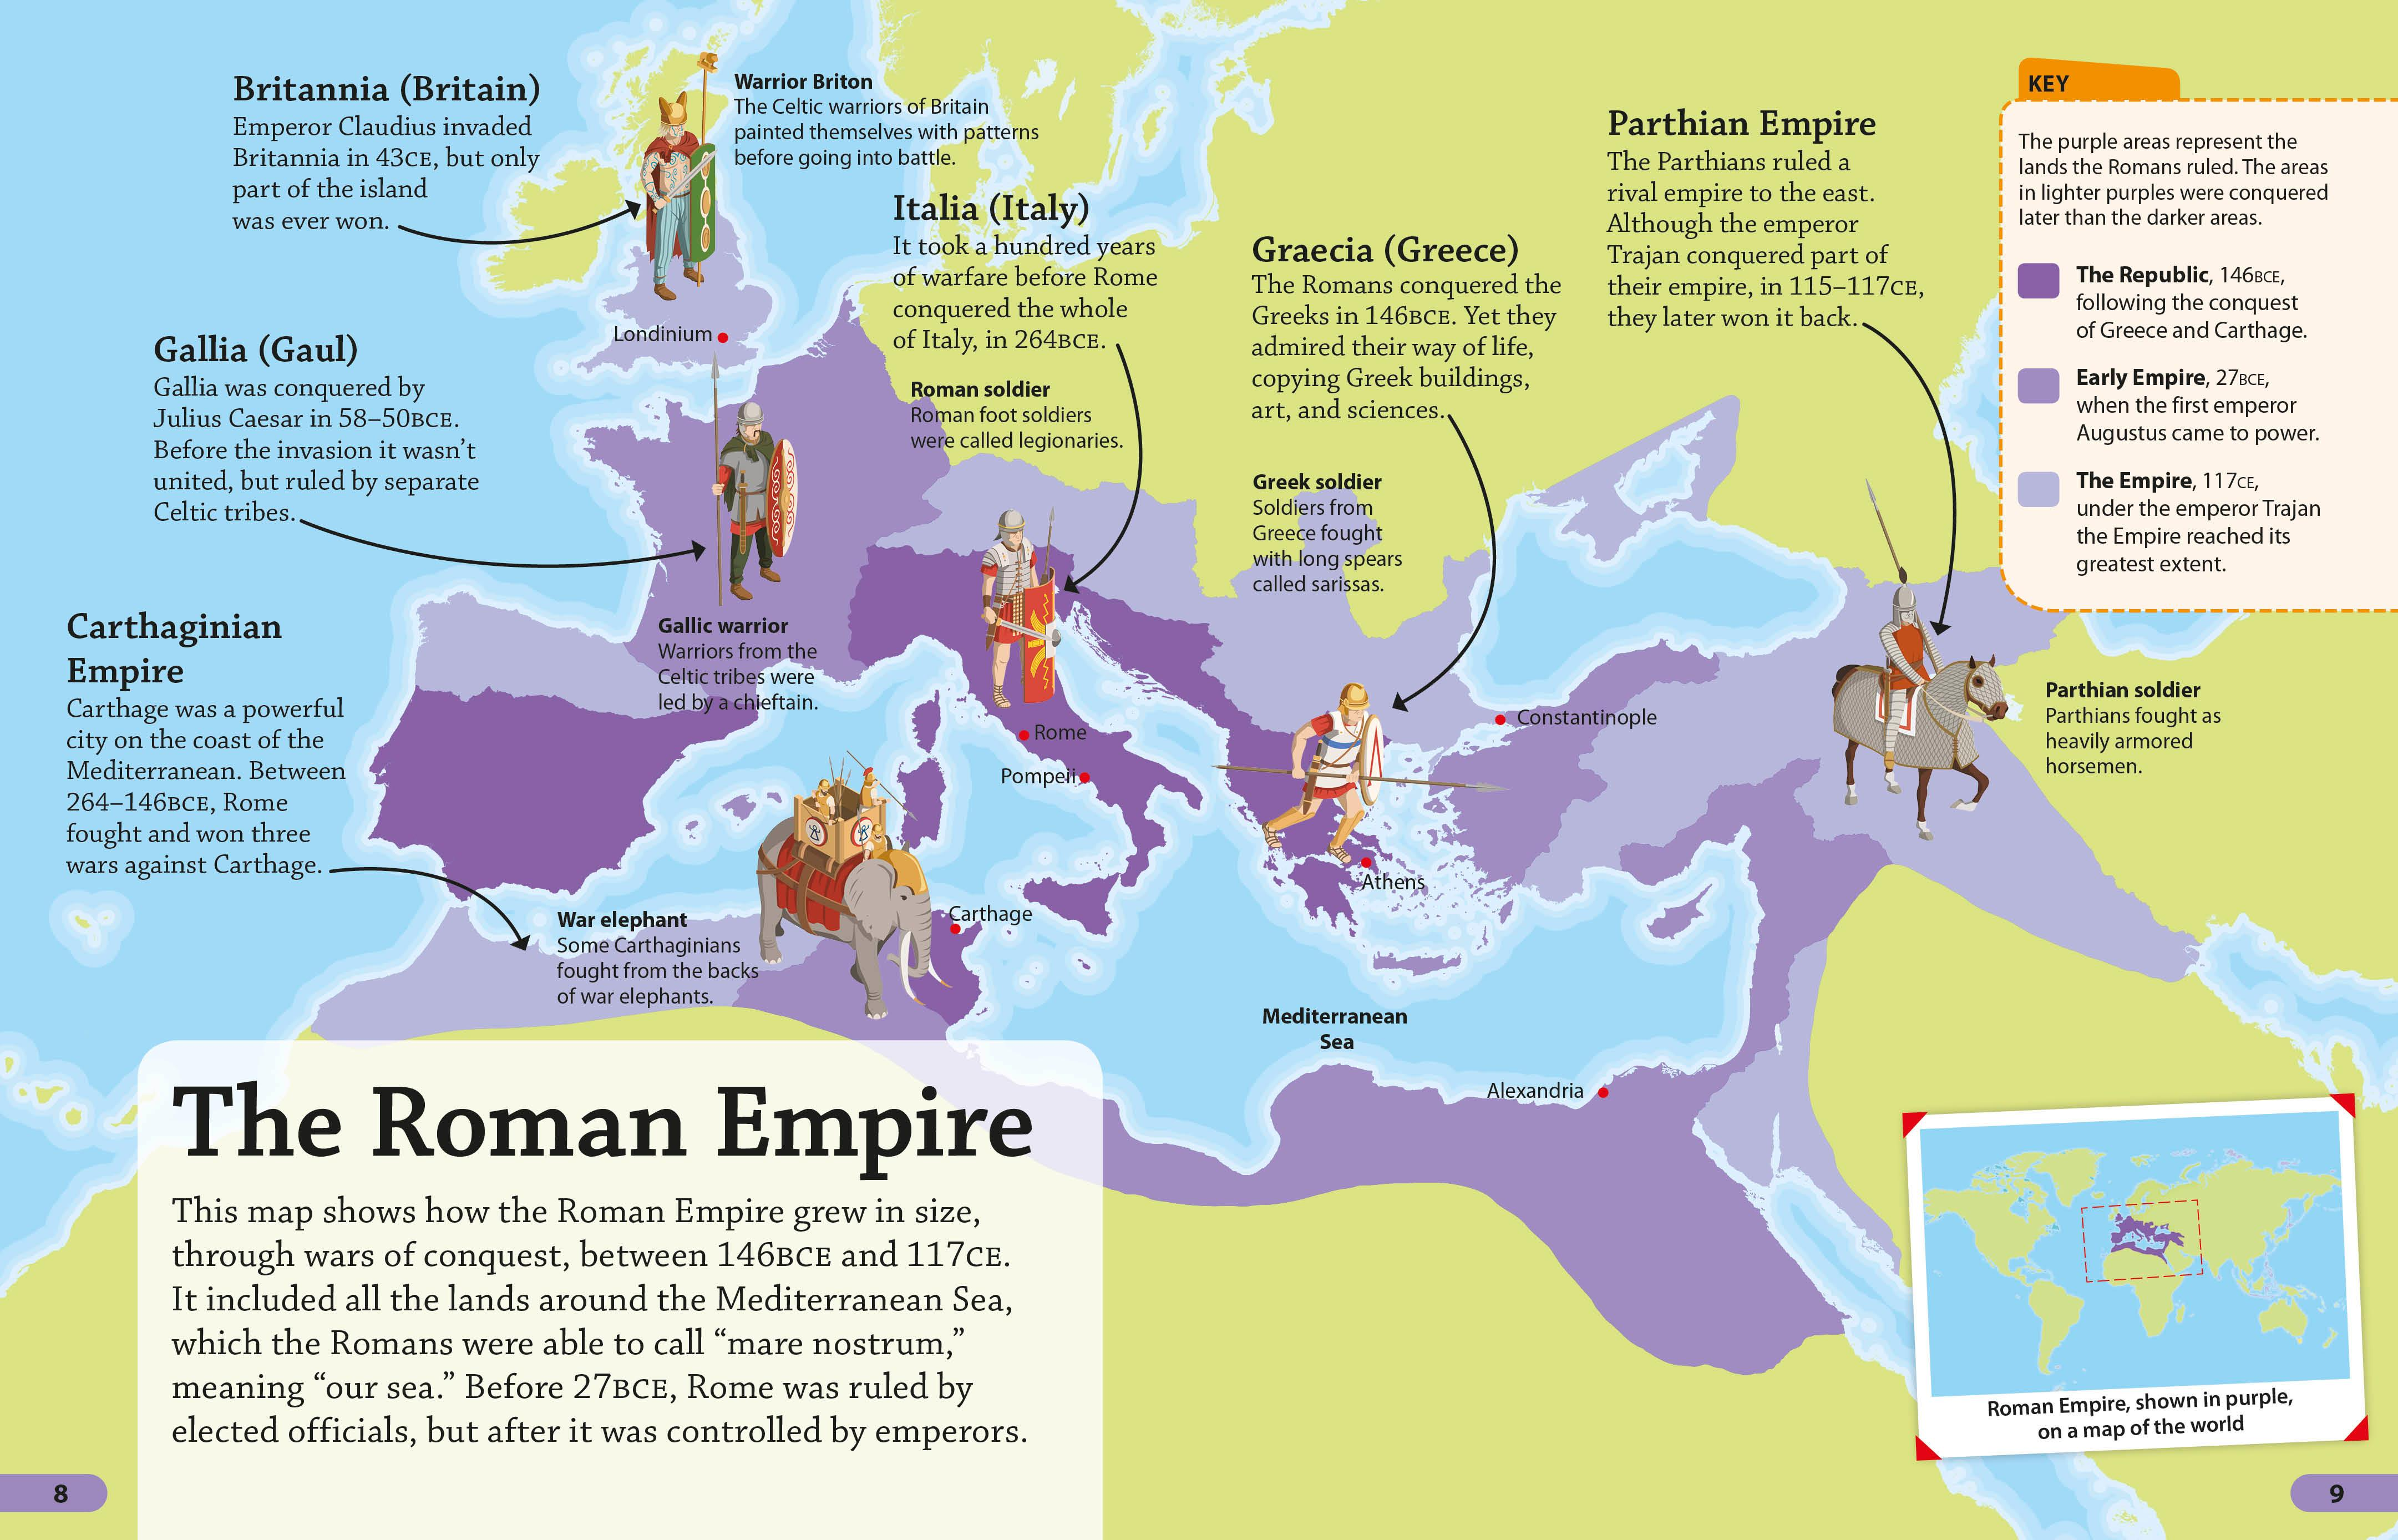 What was the size of the Roman legion